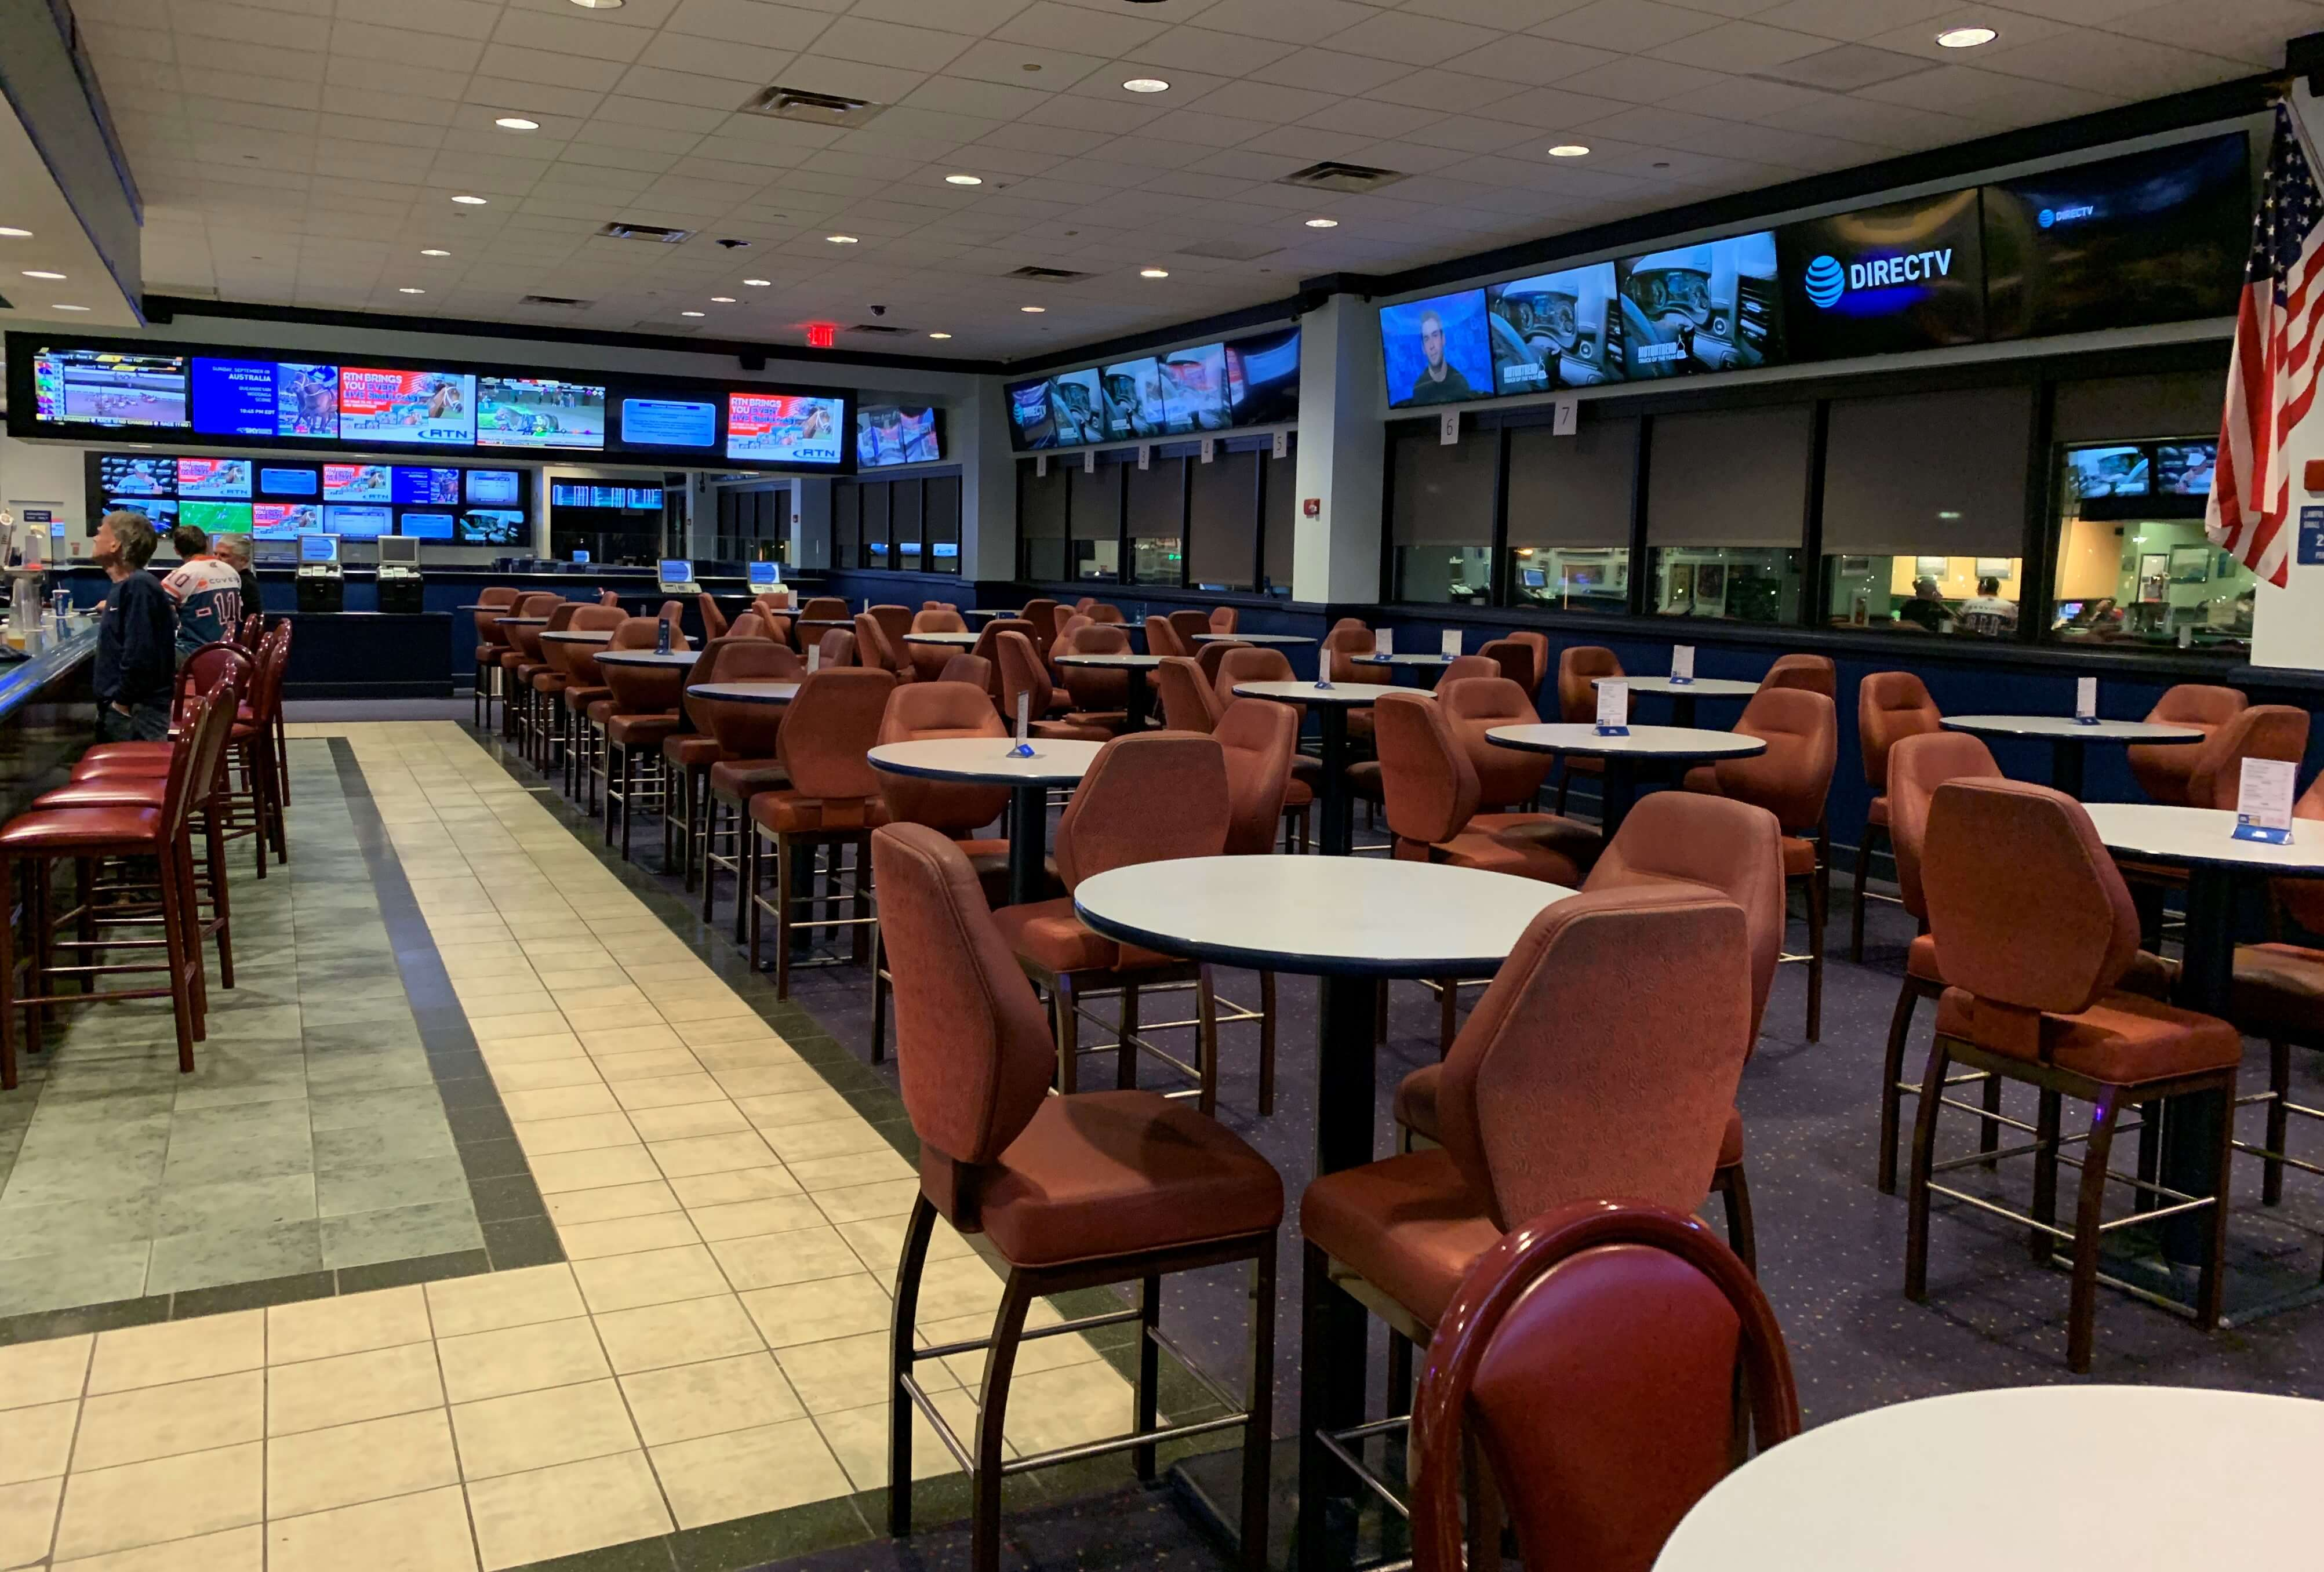 A review of the South Philadelphia Race & Sportsbook